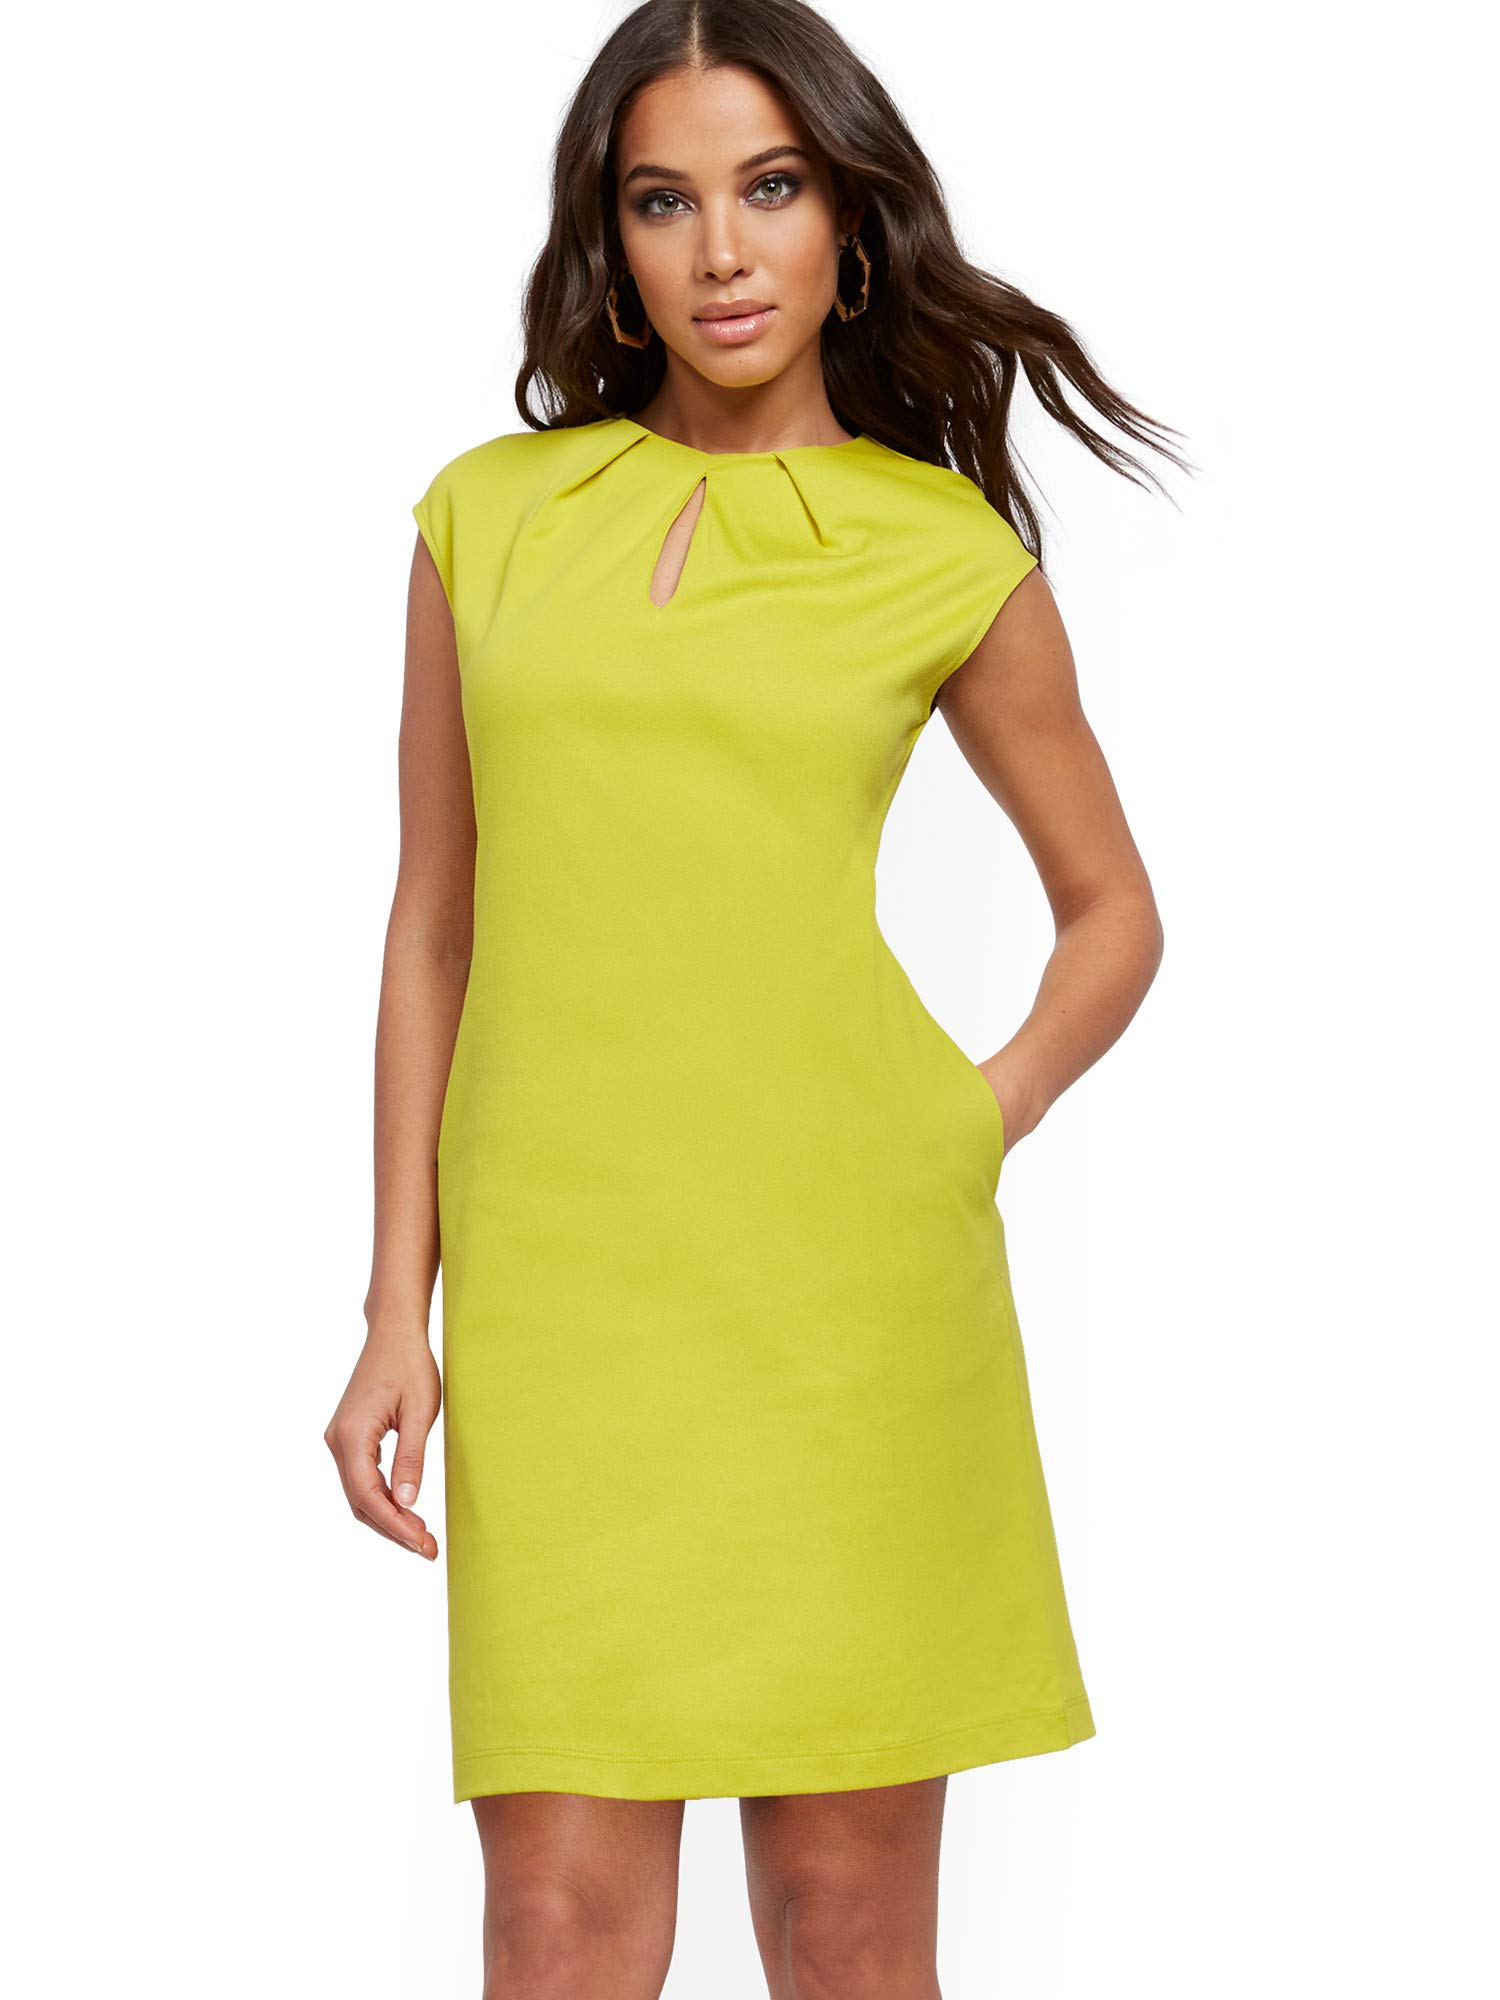 Available at Amazon: New York & Co. Women's Pleated Cotton Keyhole Shift Dress